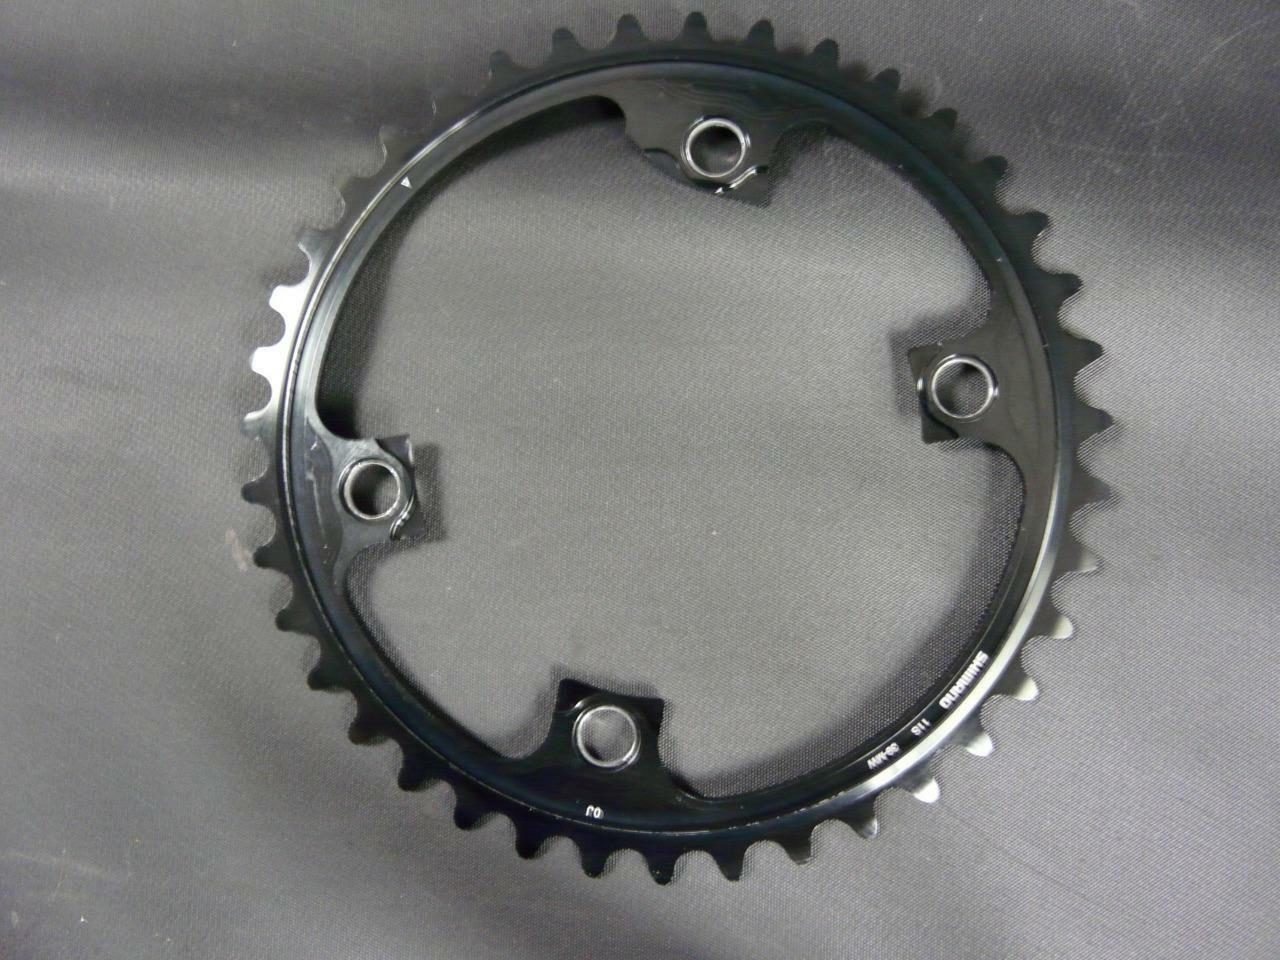 Shimano Dura Ace 9100 39T Chainring New Condition